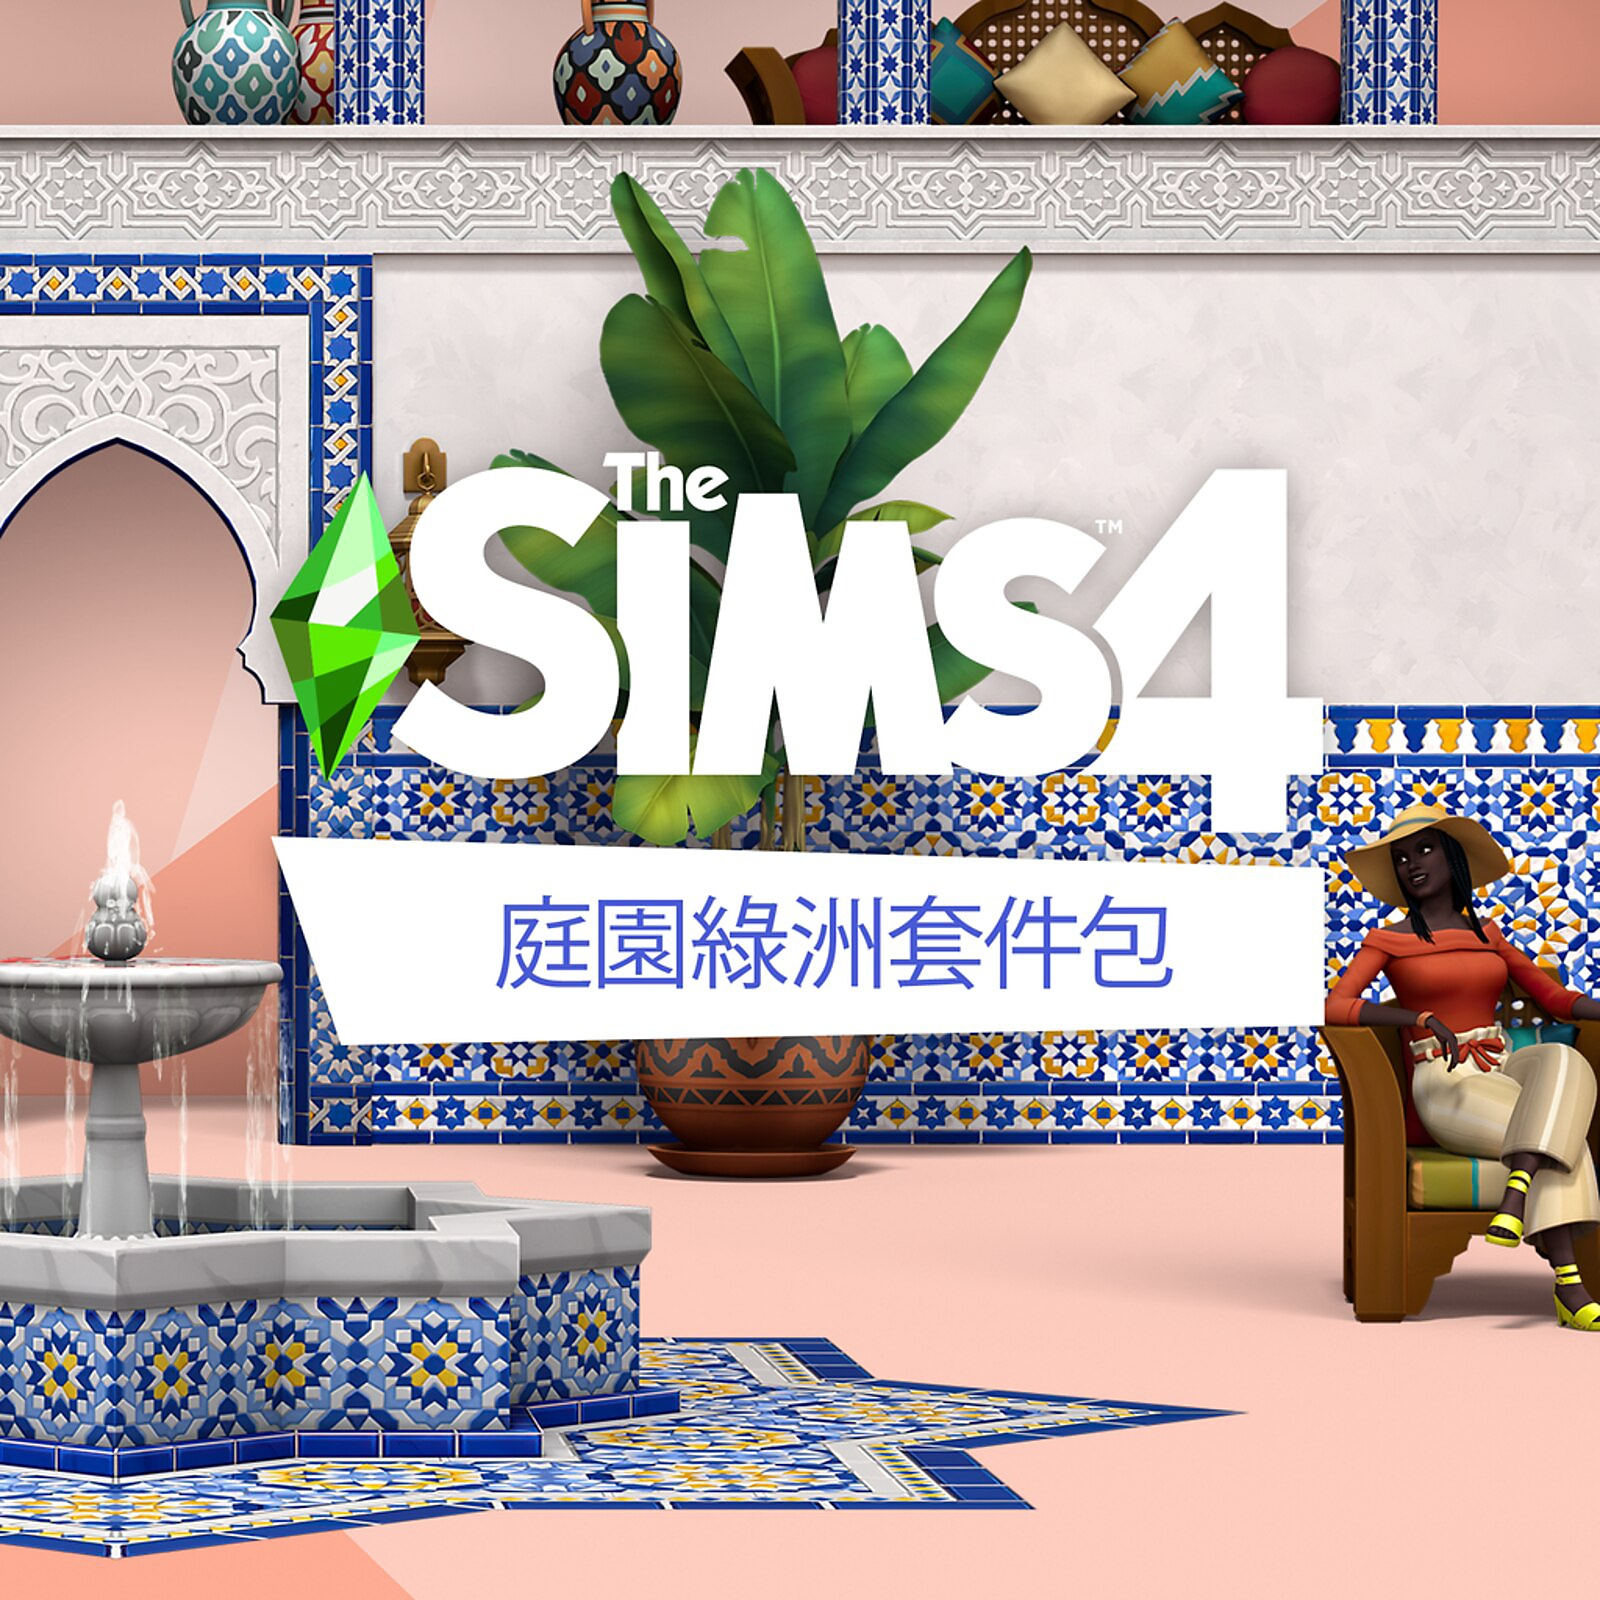 《The Sims 4》庭園綠洲套件包